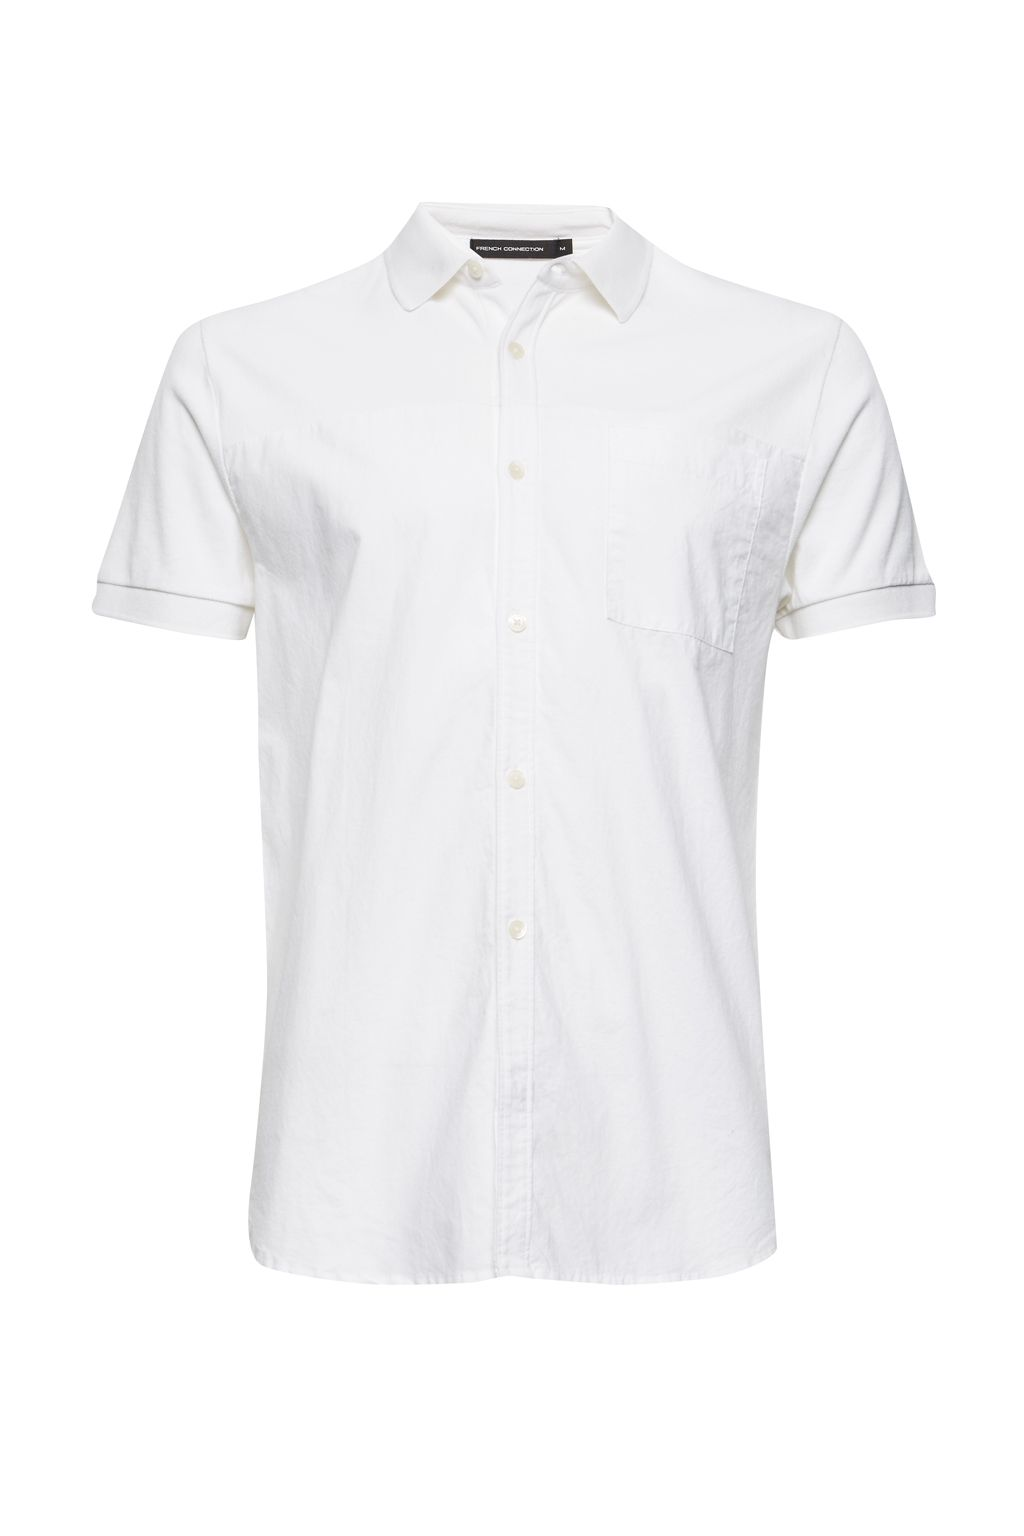 Men's French Connection Hybrid Polo Shirt, White